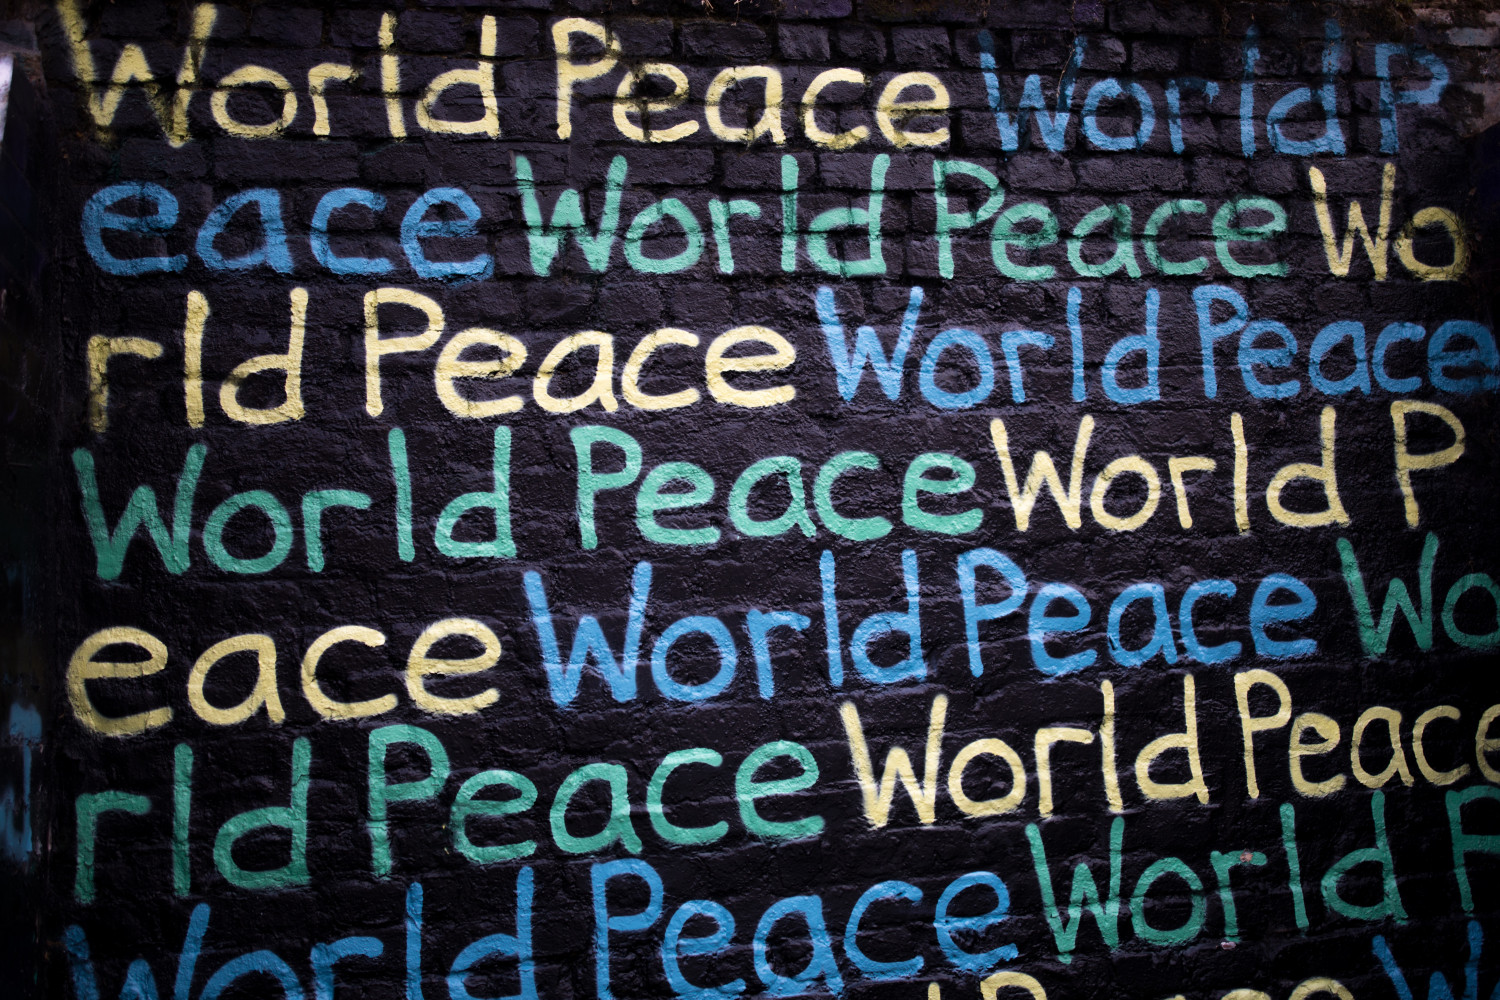 Wall with 'world peace' written in a repeating pattern